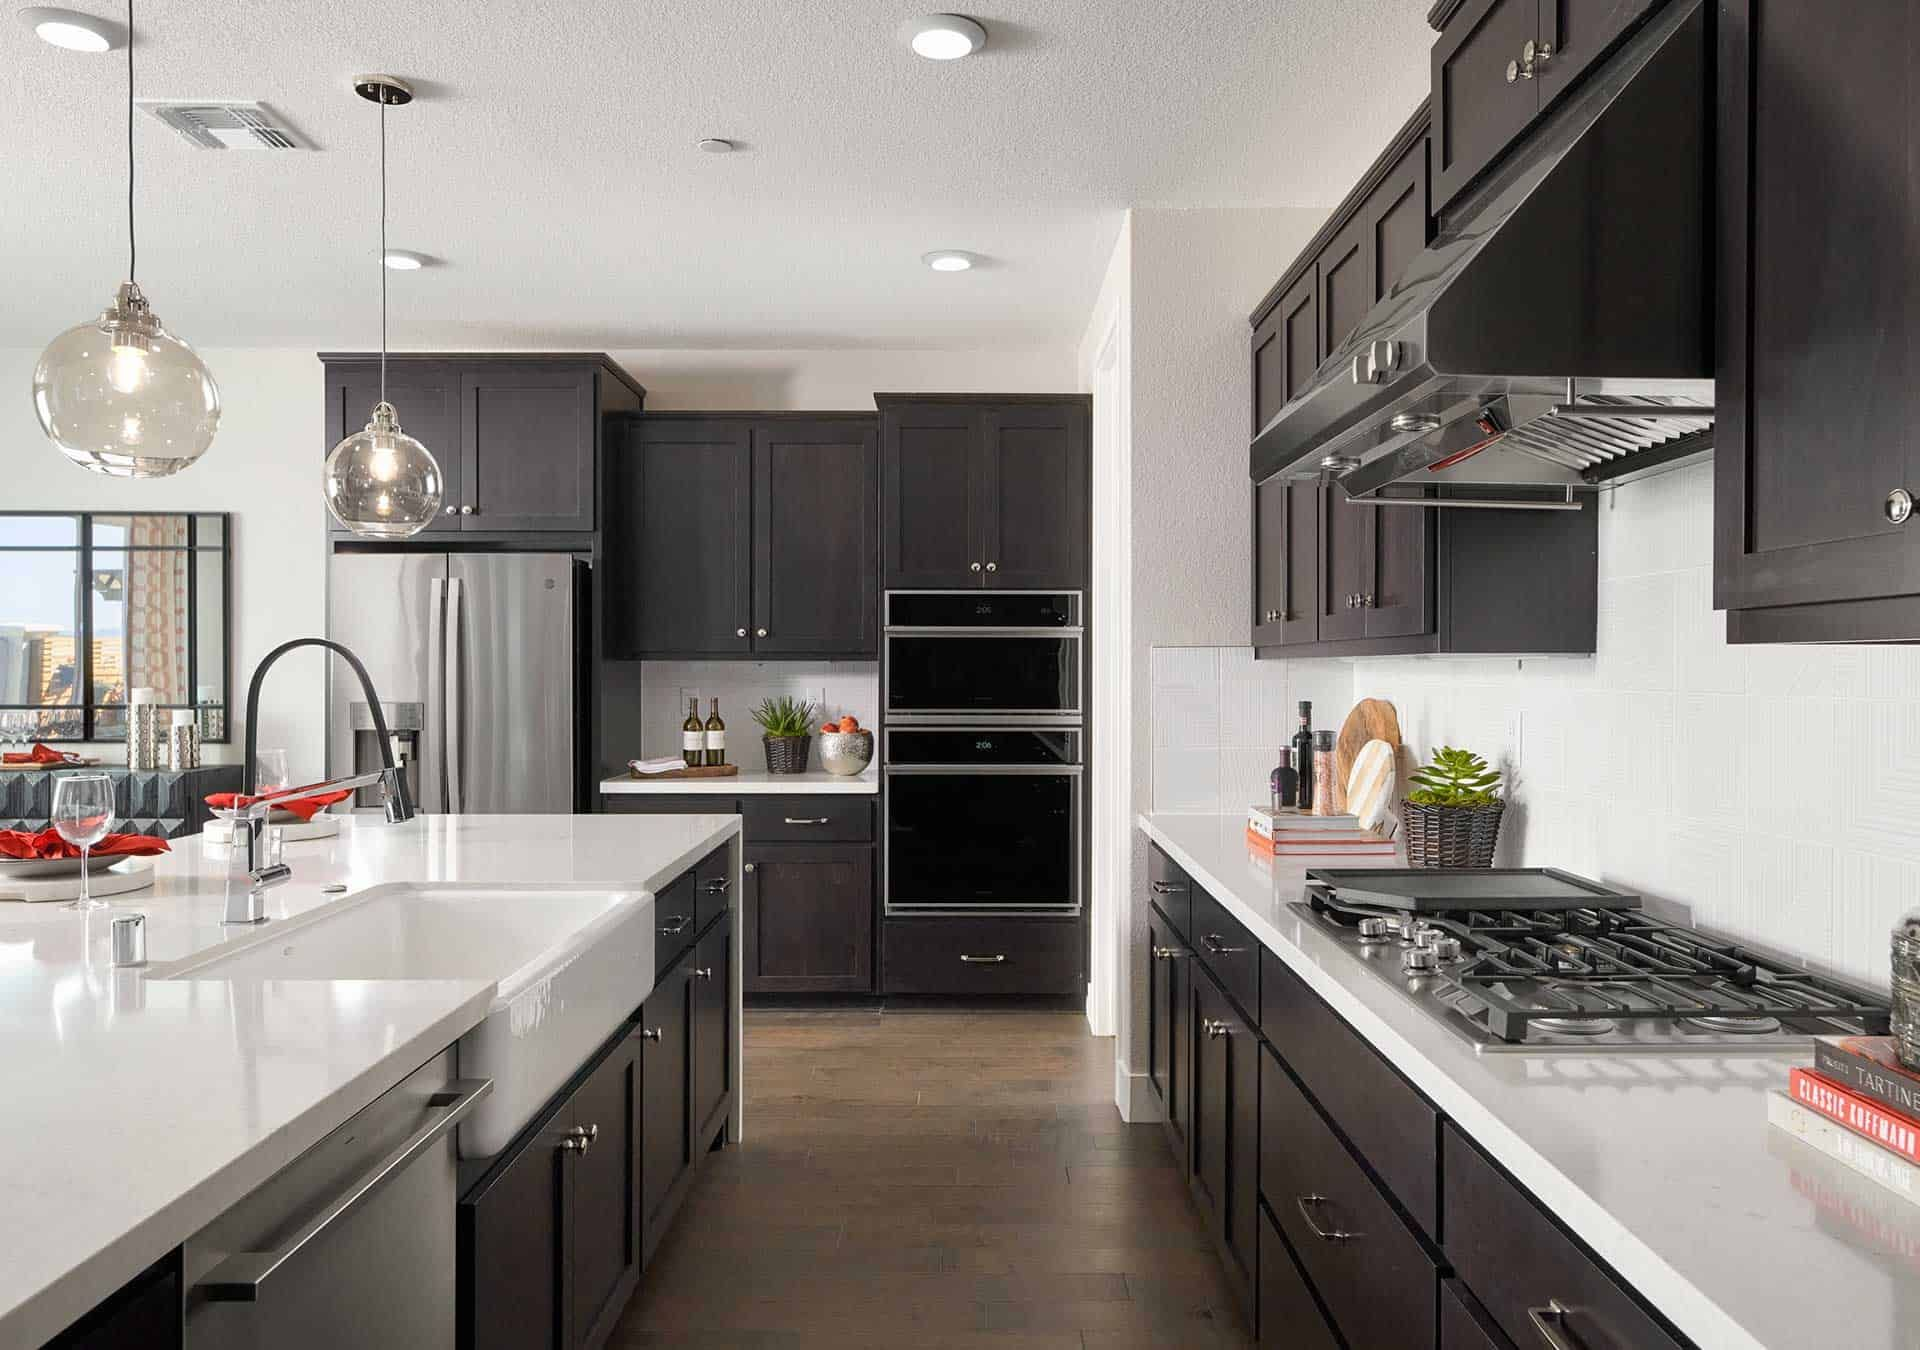 Kitchen featured in the Plan 3 By Tri Pointe Homes in Vallejo-Napa, CA